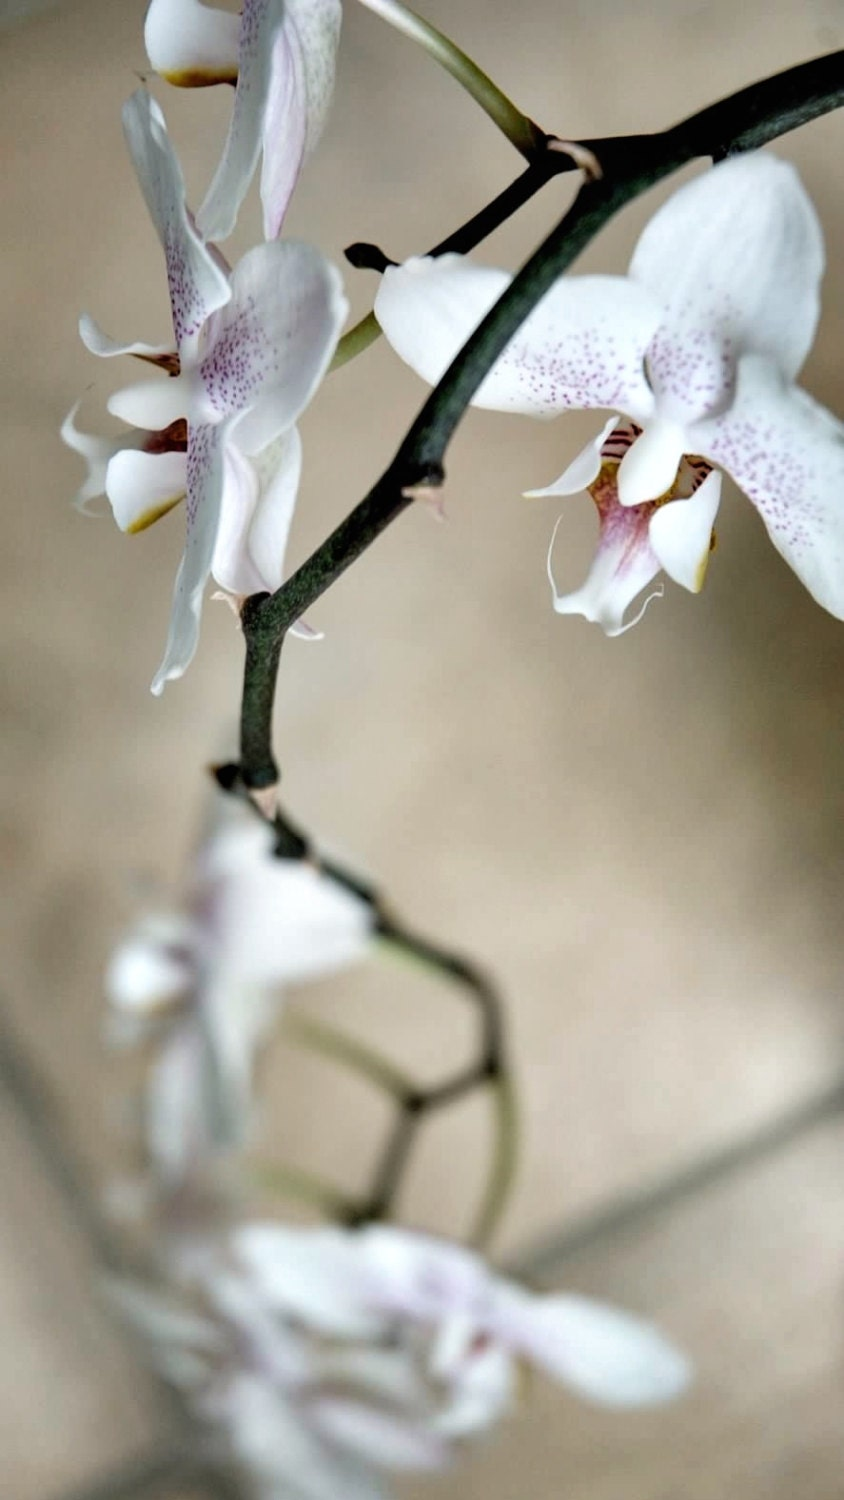 Orchid Study, 12x24in fine art print ready to frame, flower photography - PollenPictures